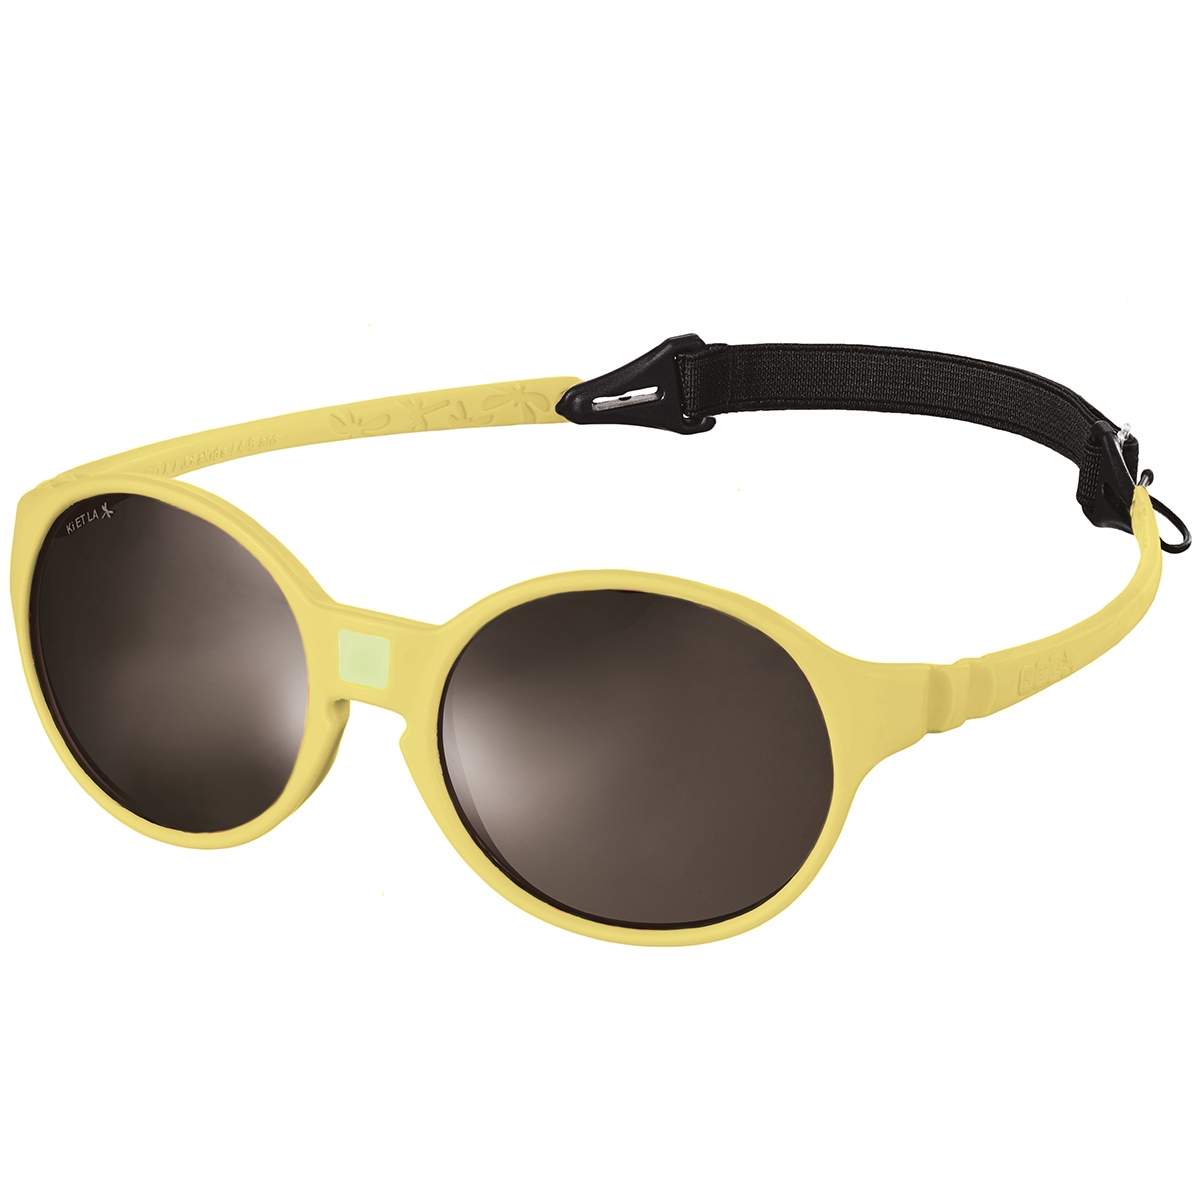 Mycey Boy's Age 4-6 Mass Jokakid Sunglasses Yellow